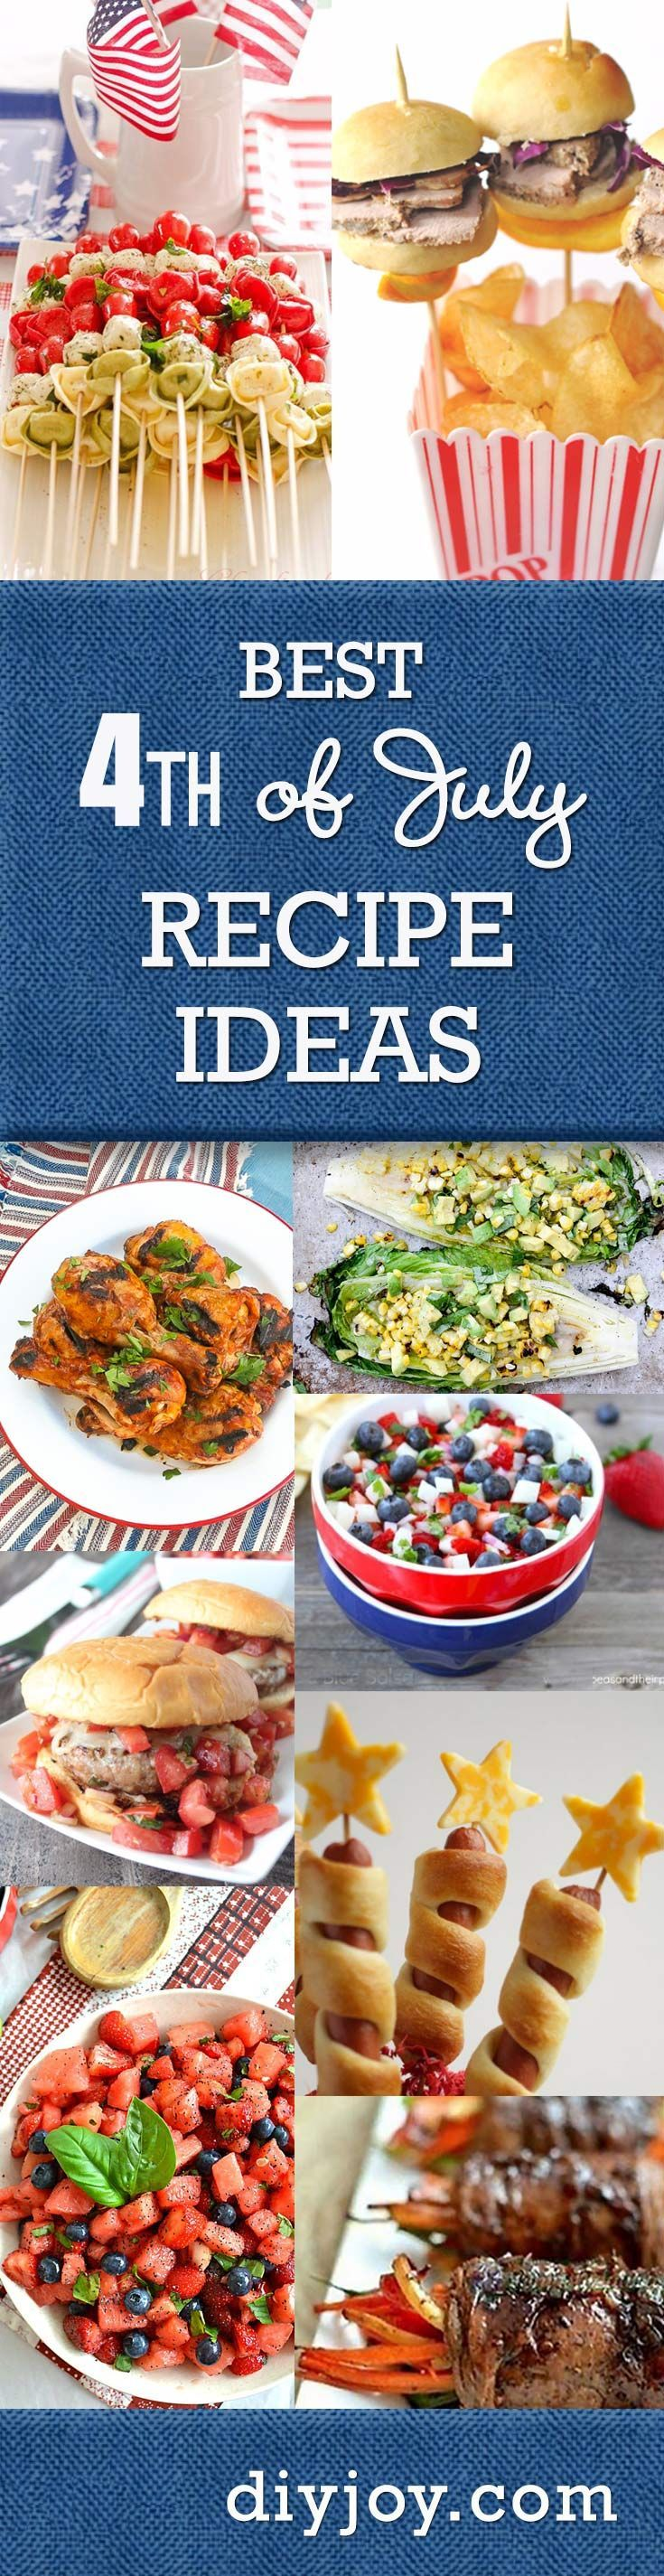 Best 4th of july recipes ever diy party and fun food for 4th of july celebration ideas